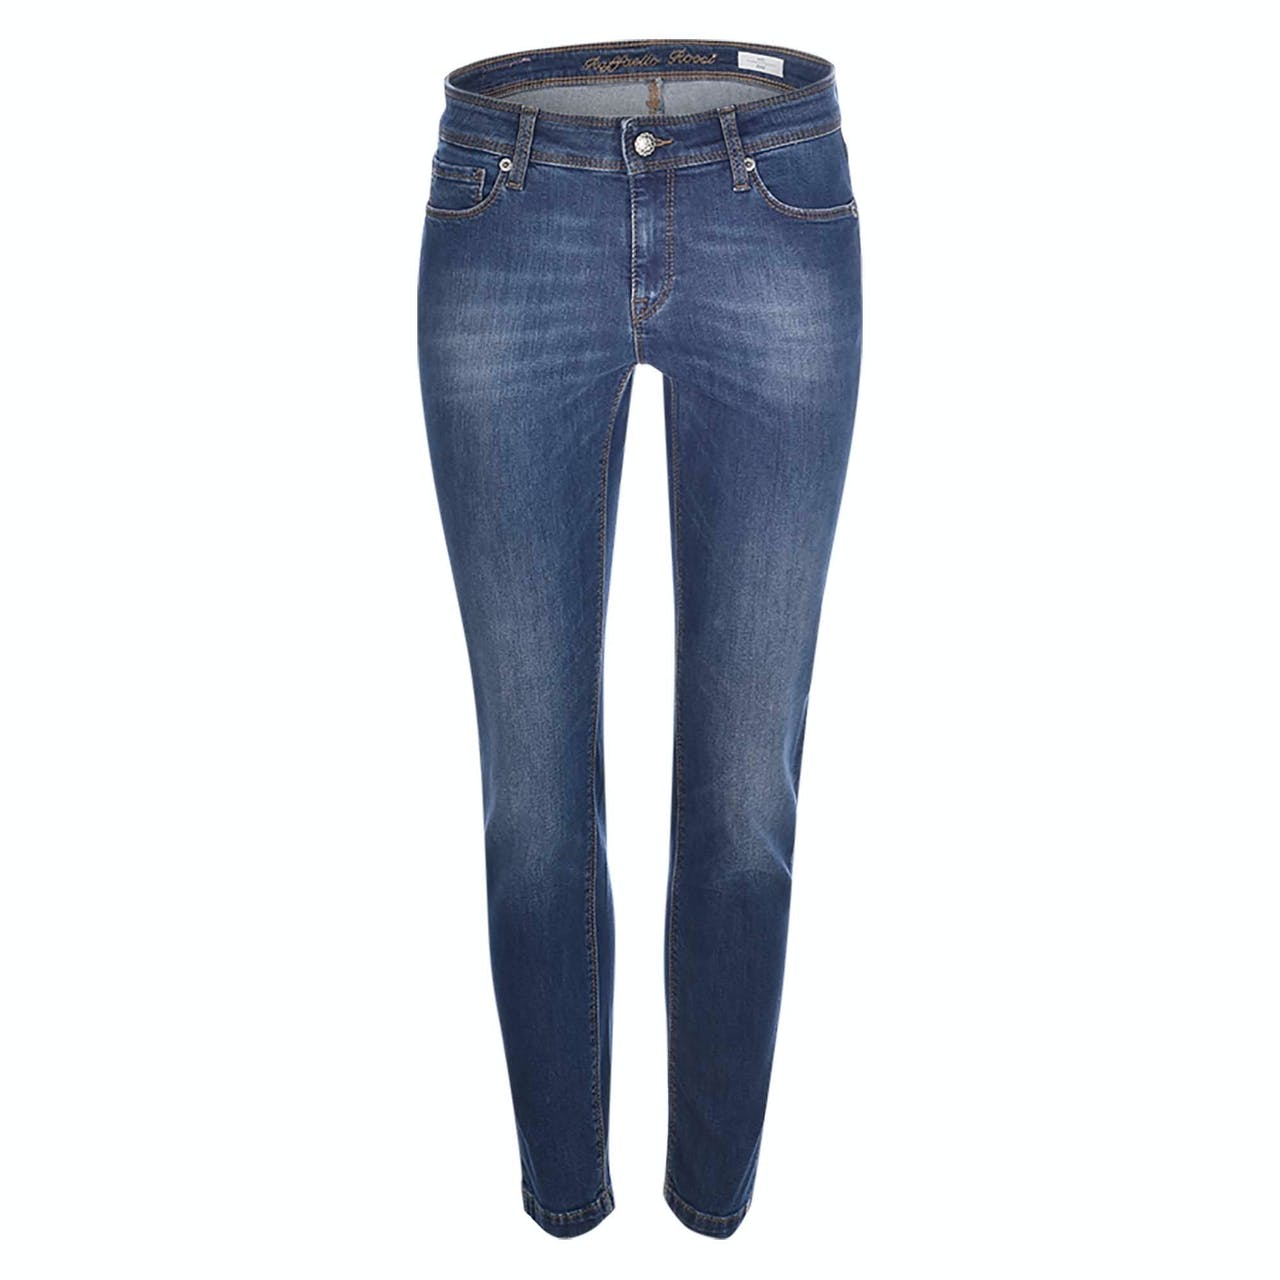 Jeans - Skinny Fit - Vic